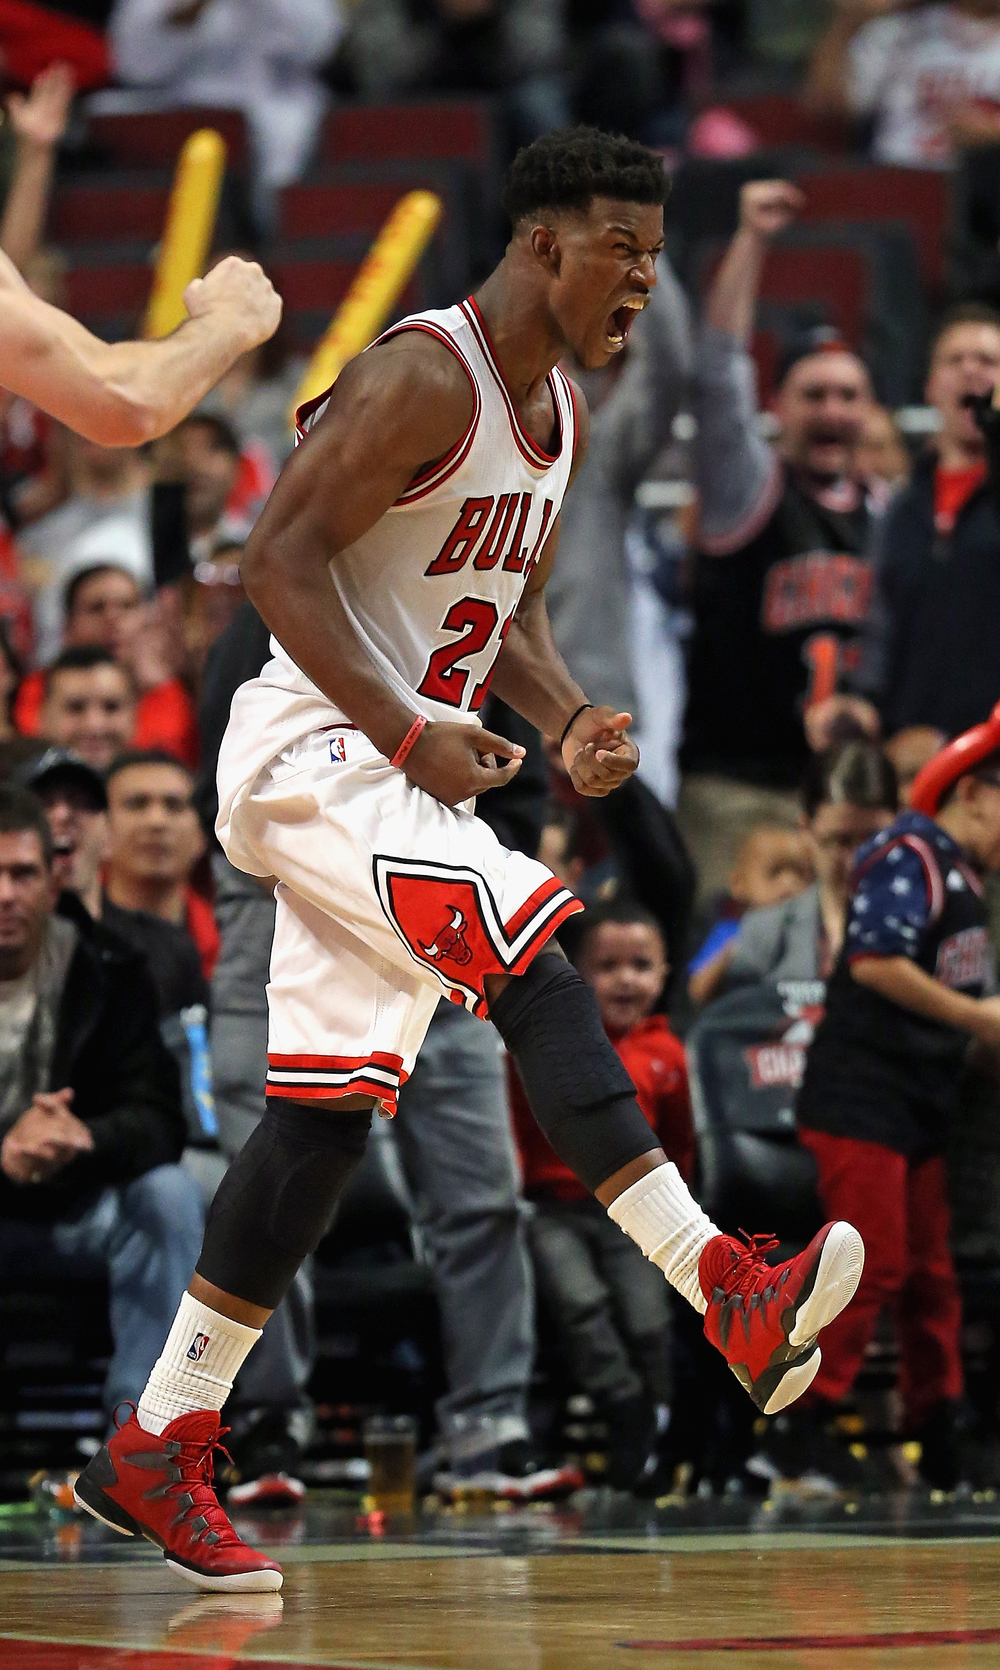 Jimmy Butler has been the Bulls best player while averaging a career high 20 ppg.